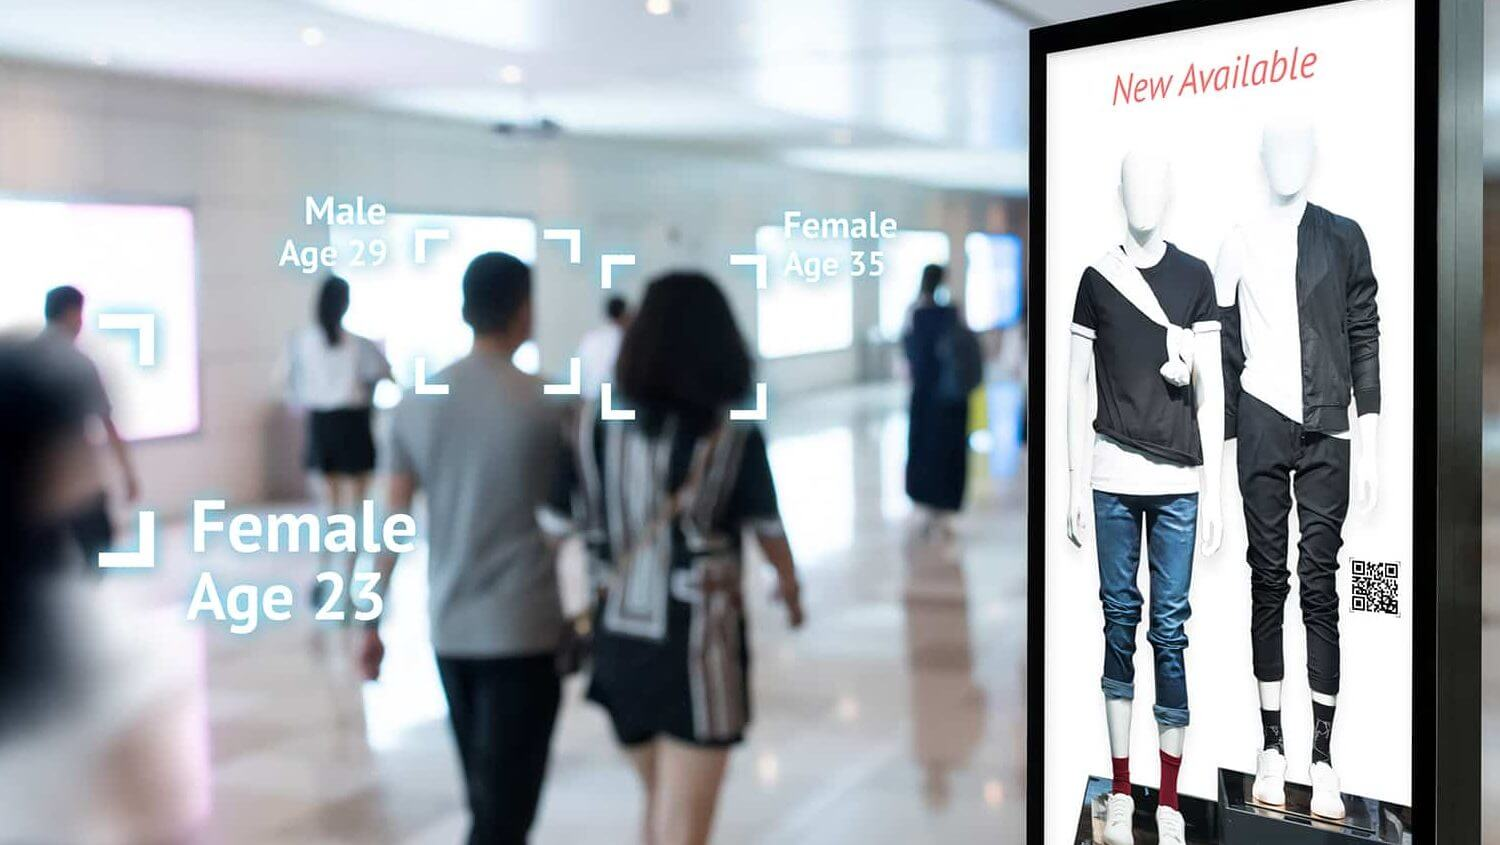 Mobile Retail Digital Signage